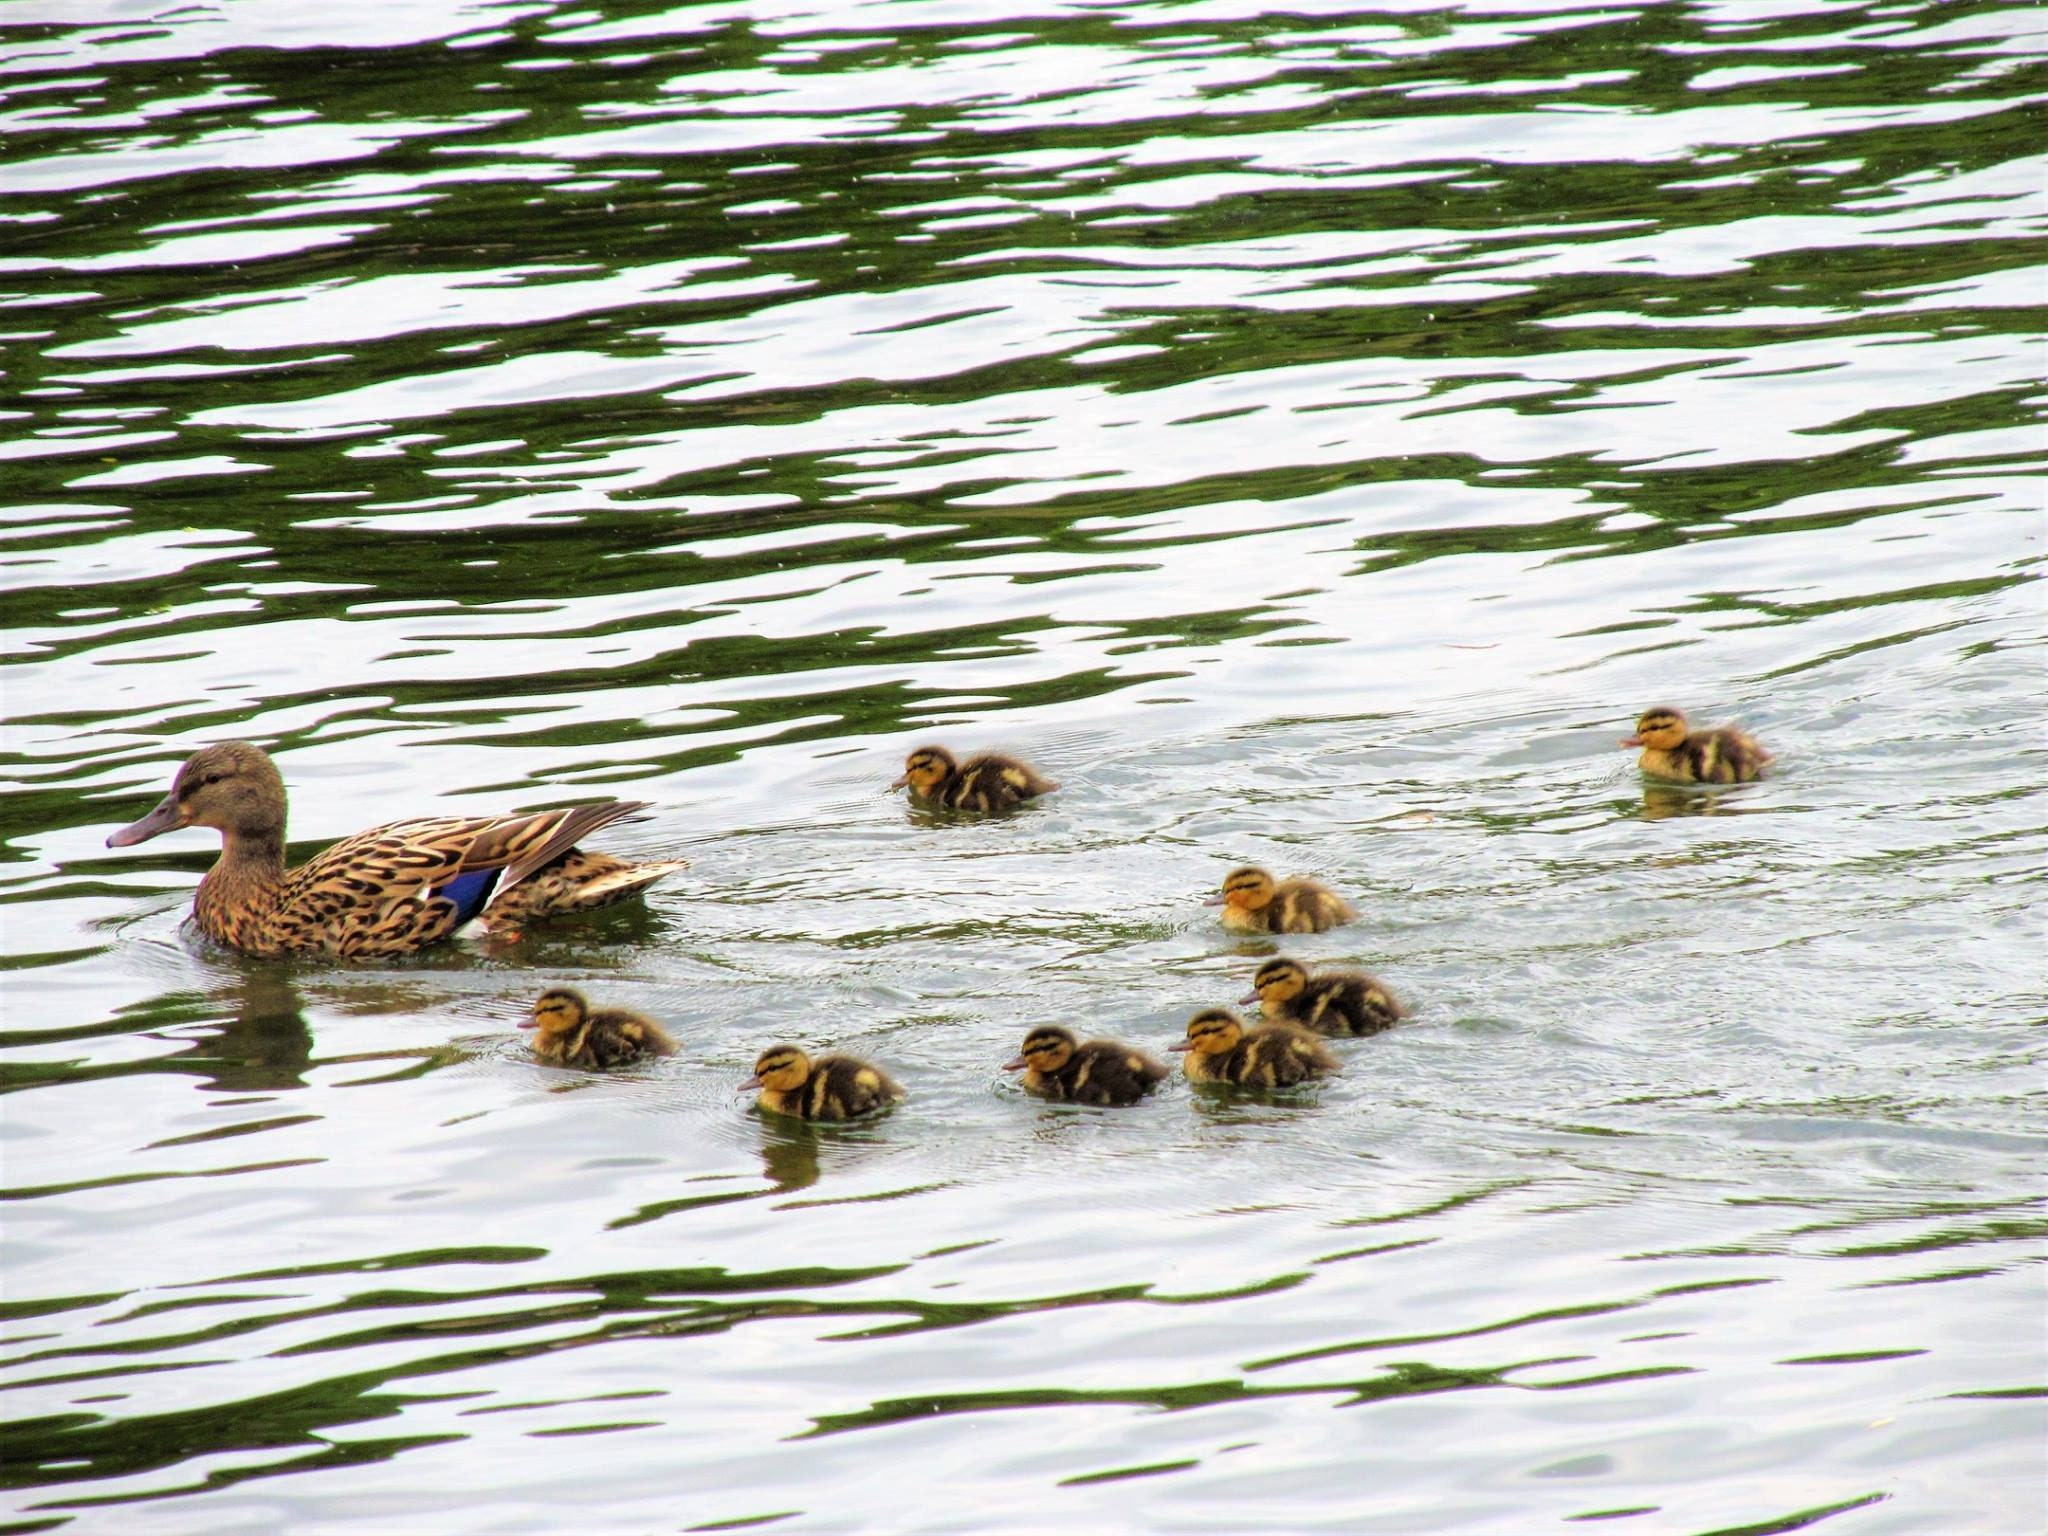 Mildred and her ducklings